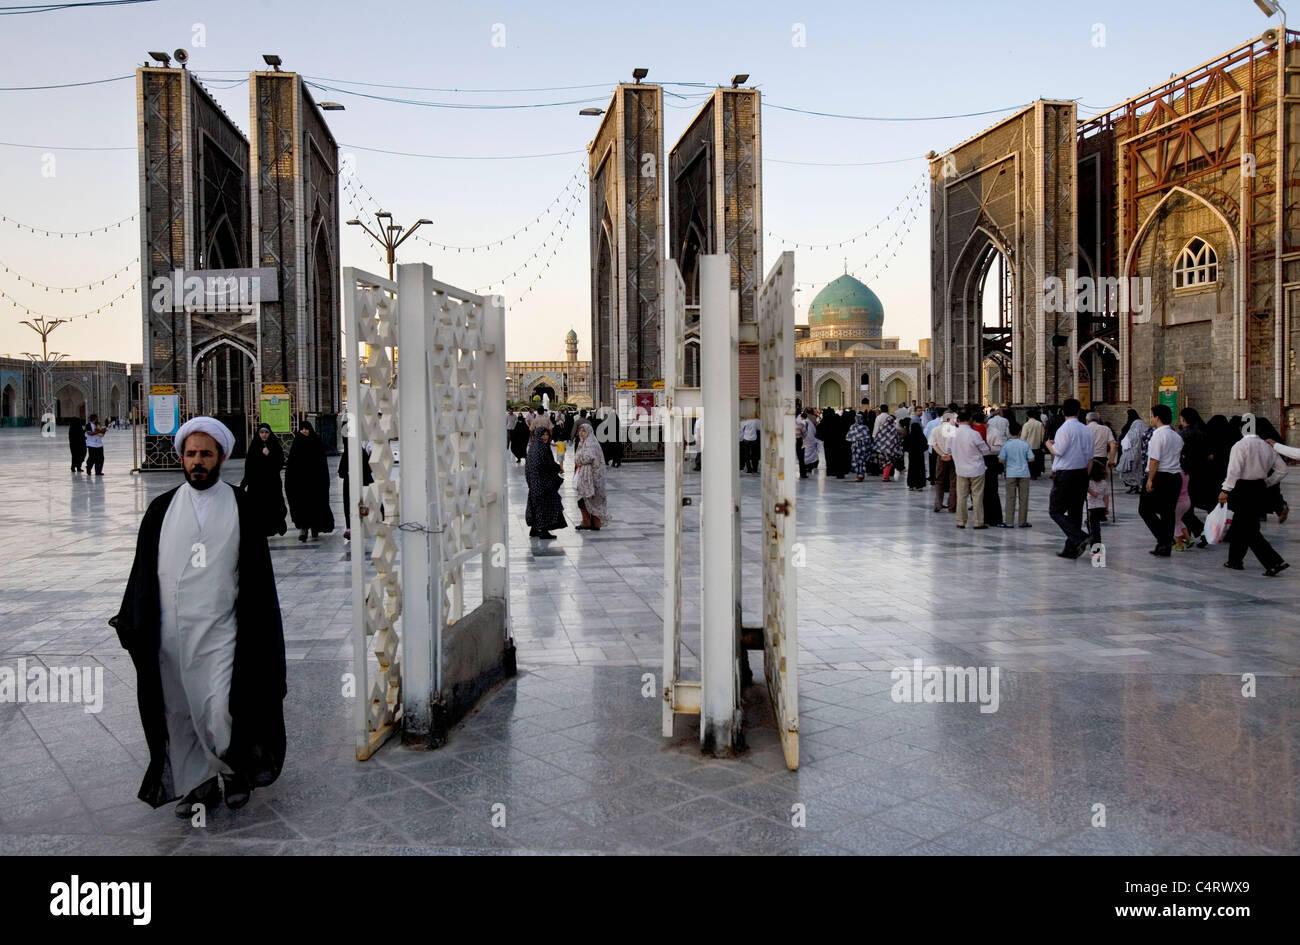 Mosque and shrine of Imam Ali Reza (8th Shi'ite Imam) in Mashhad, Iran - Stock Image